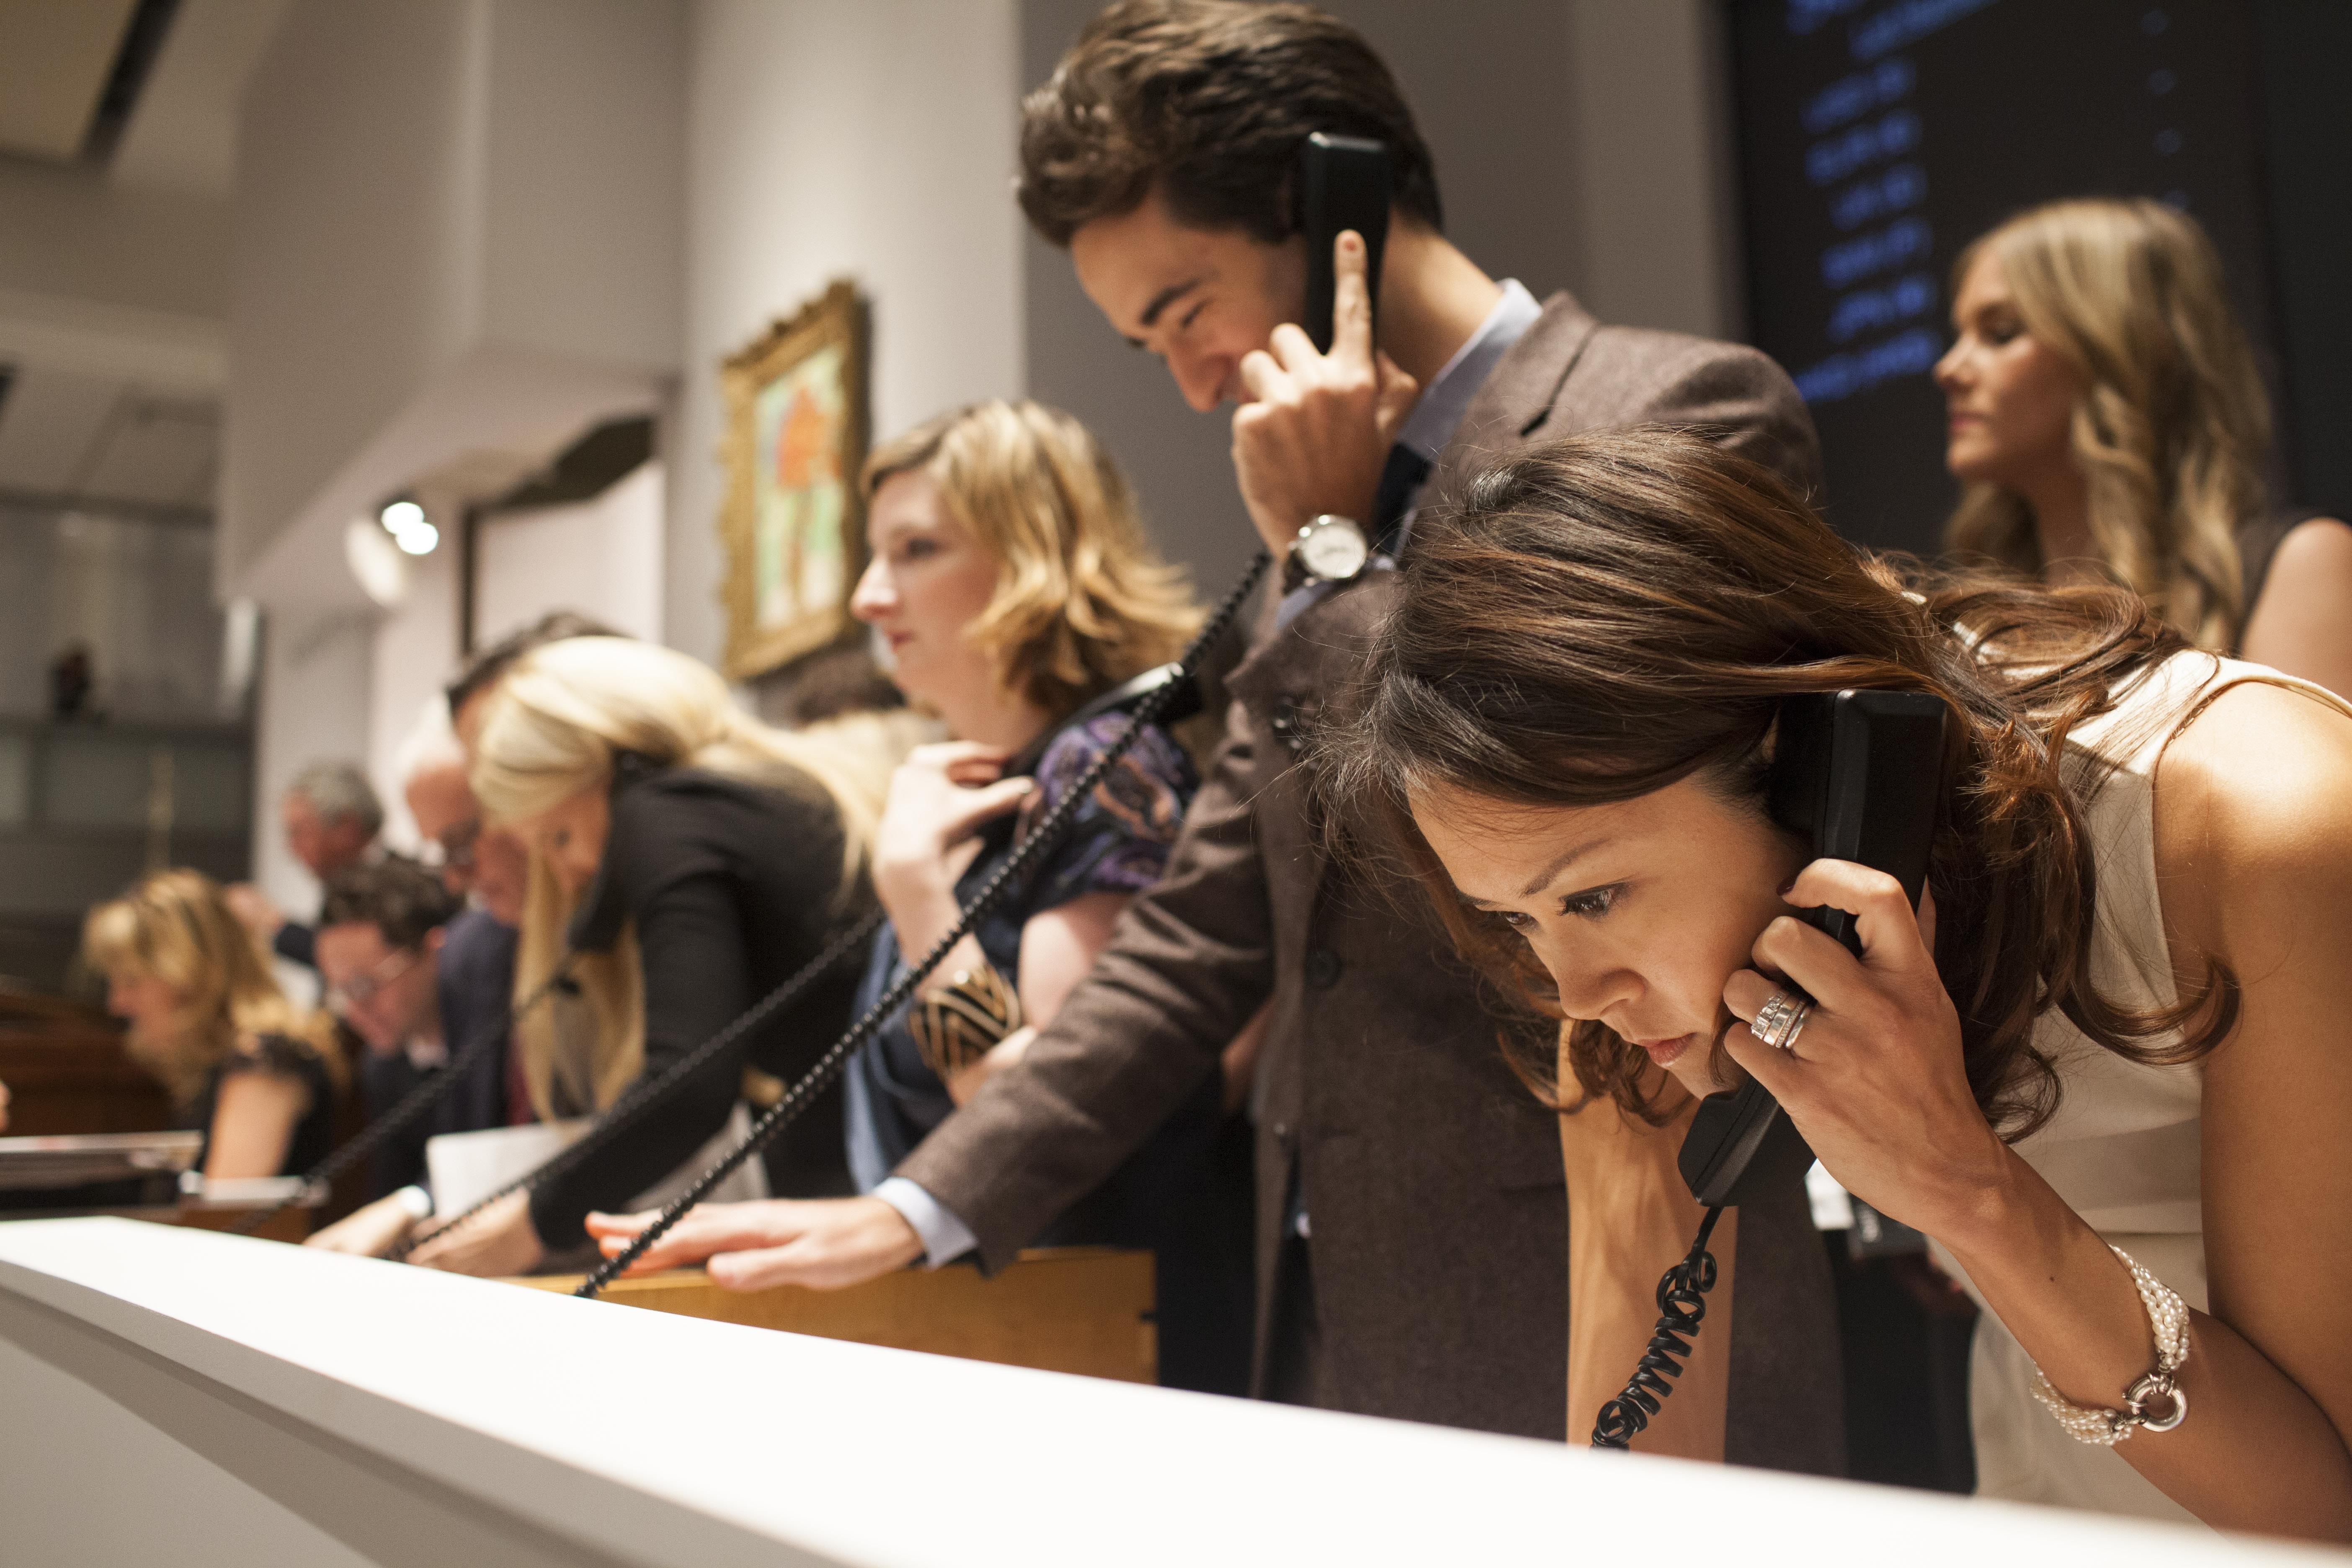 Sotheby's auction brokers in Action - Sotheby's Auction House